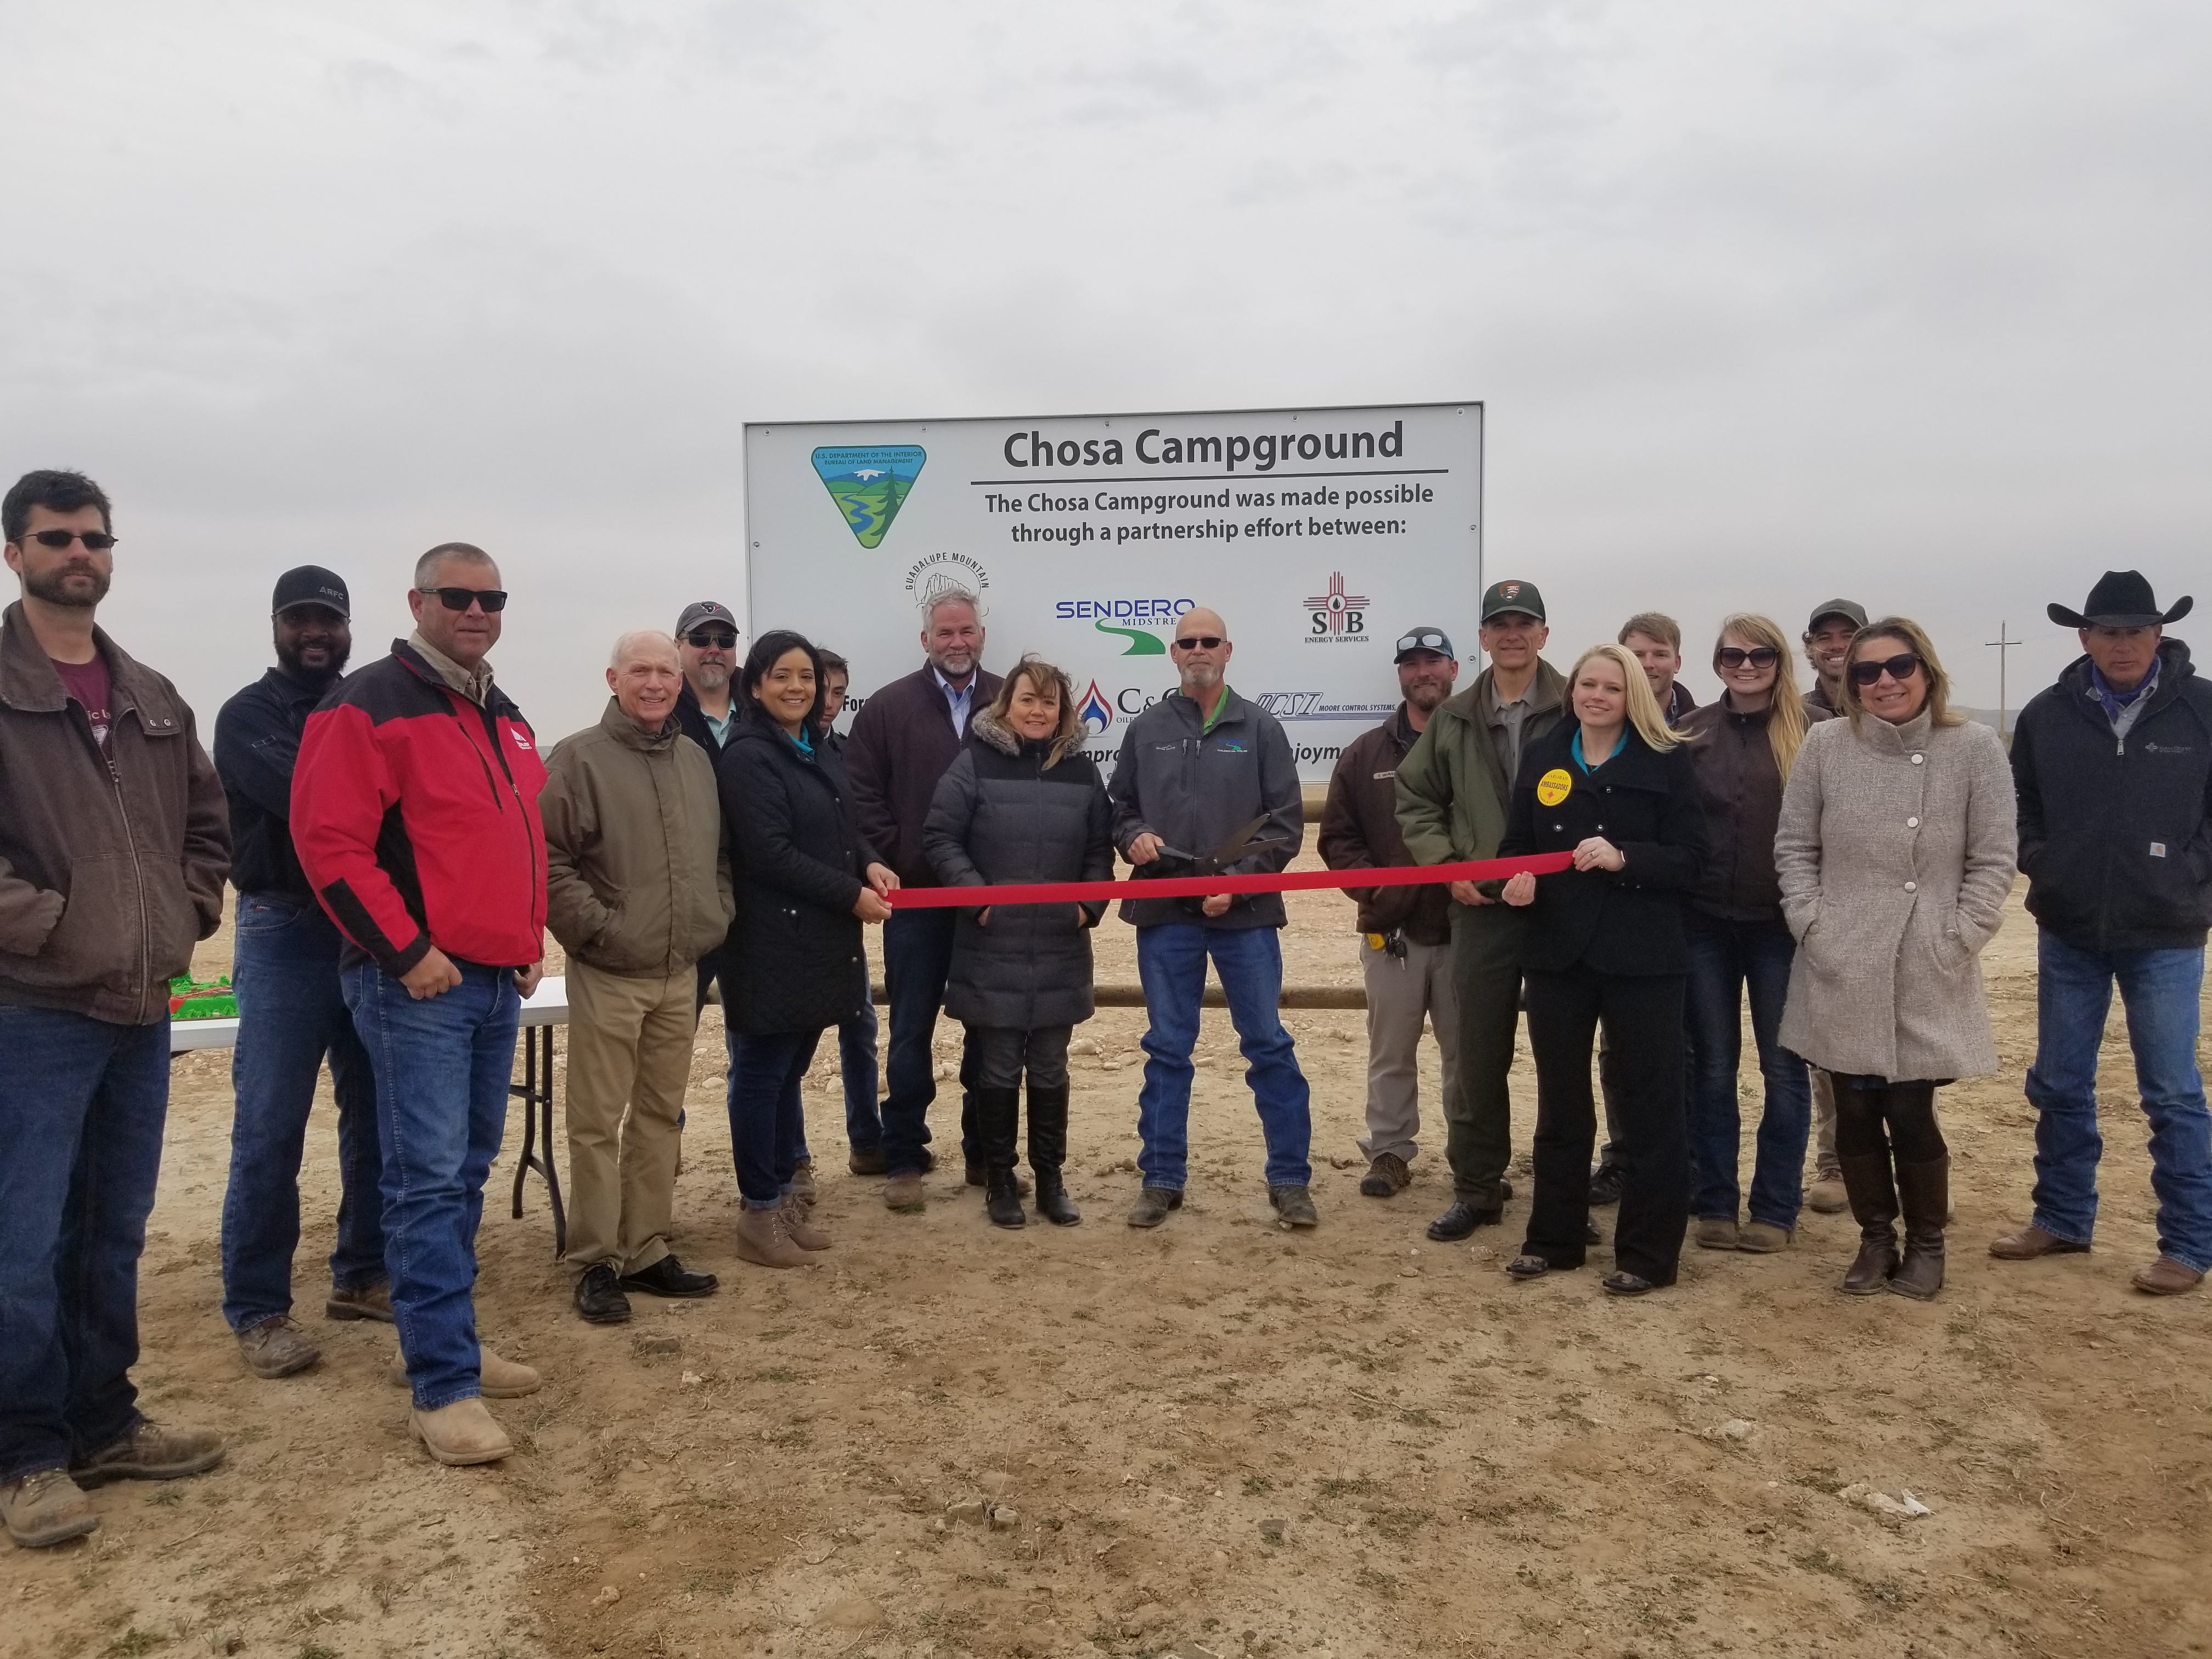 Improvements to the Chosa Campground were made possible through partnerships with local businesses, the Bureau of Land Management and area organizations. A ribbon cutting was held Dec. 6.